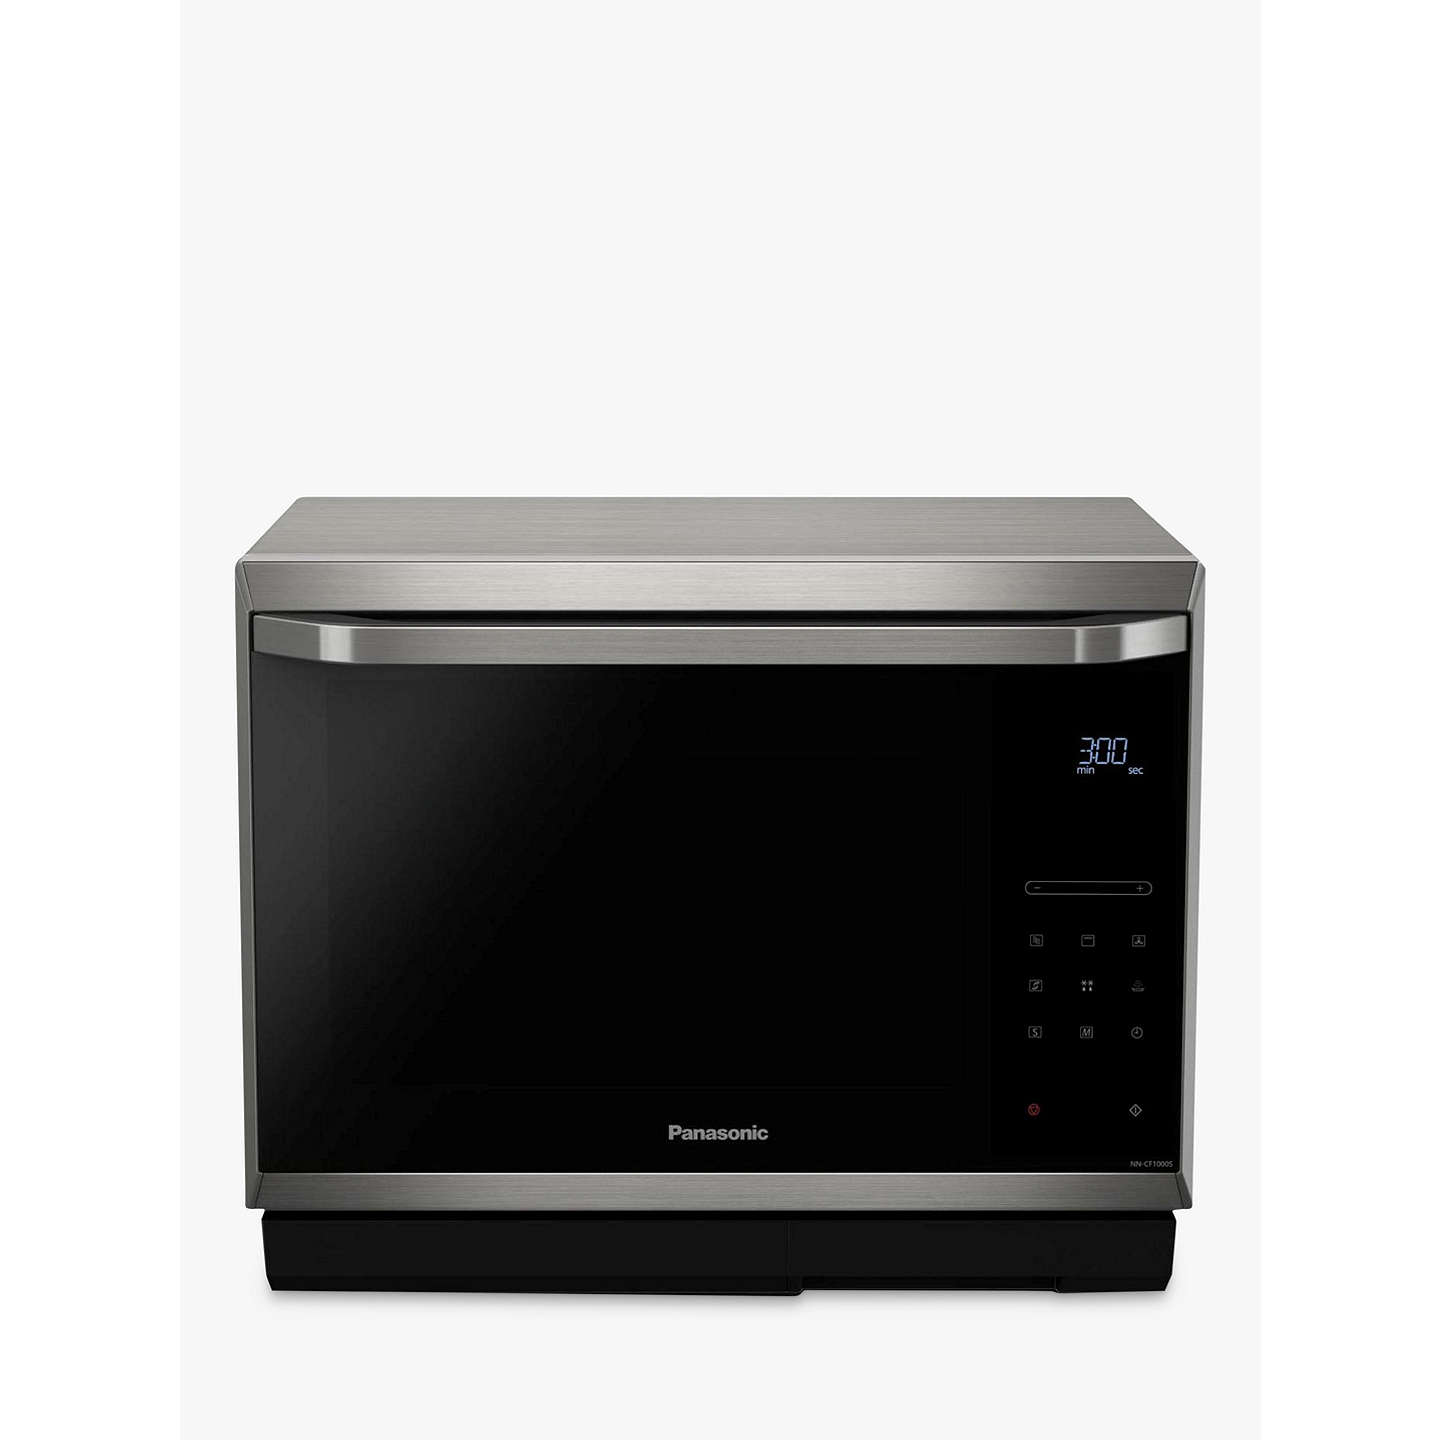 Panasonic Nn Cf873sbpq Combination Microwave Oven Stainless Steel Online At Johnlewis